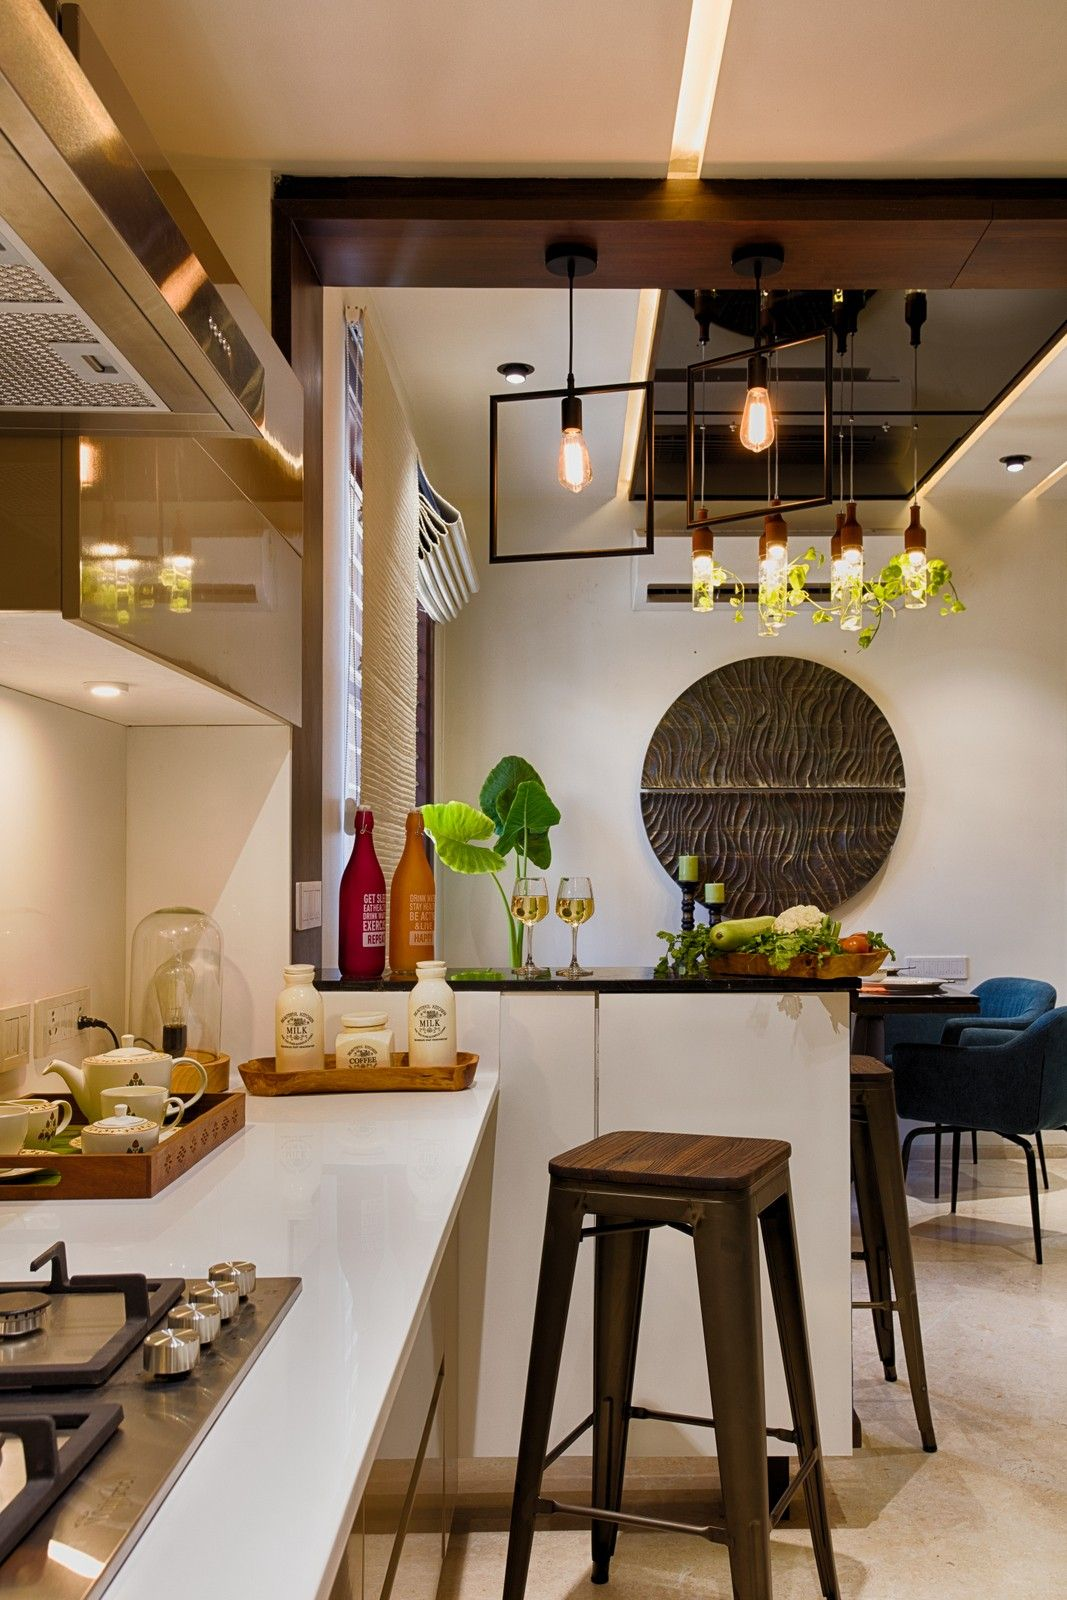 15 Indian Kitchen Design Images From Real Homes Modern Kitchen Design Kitchen Design Images Kitchen Room Design